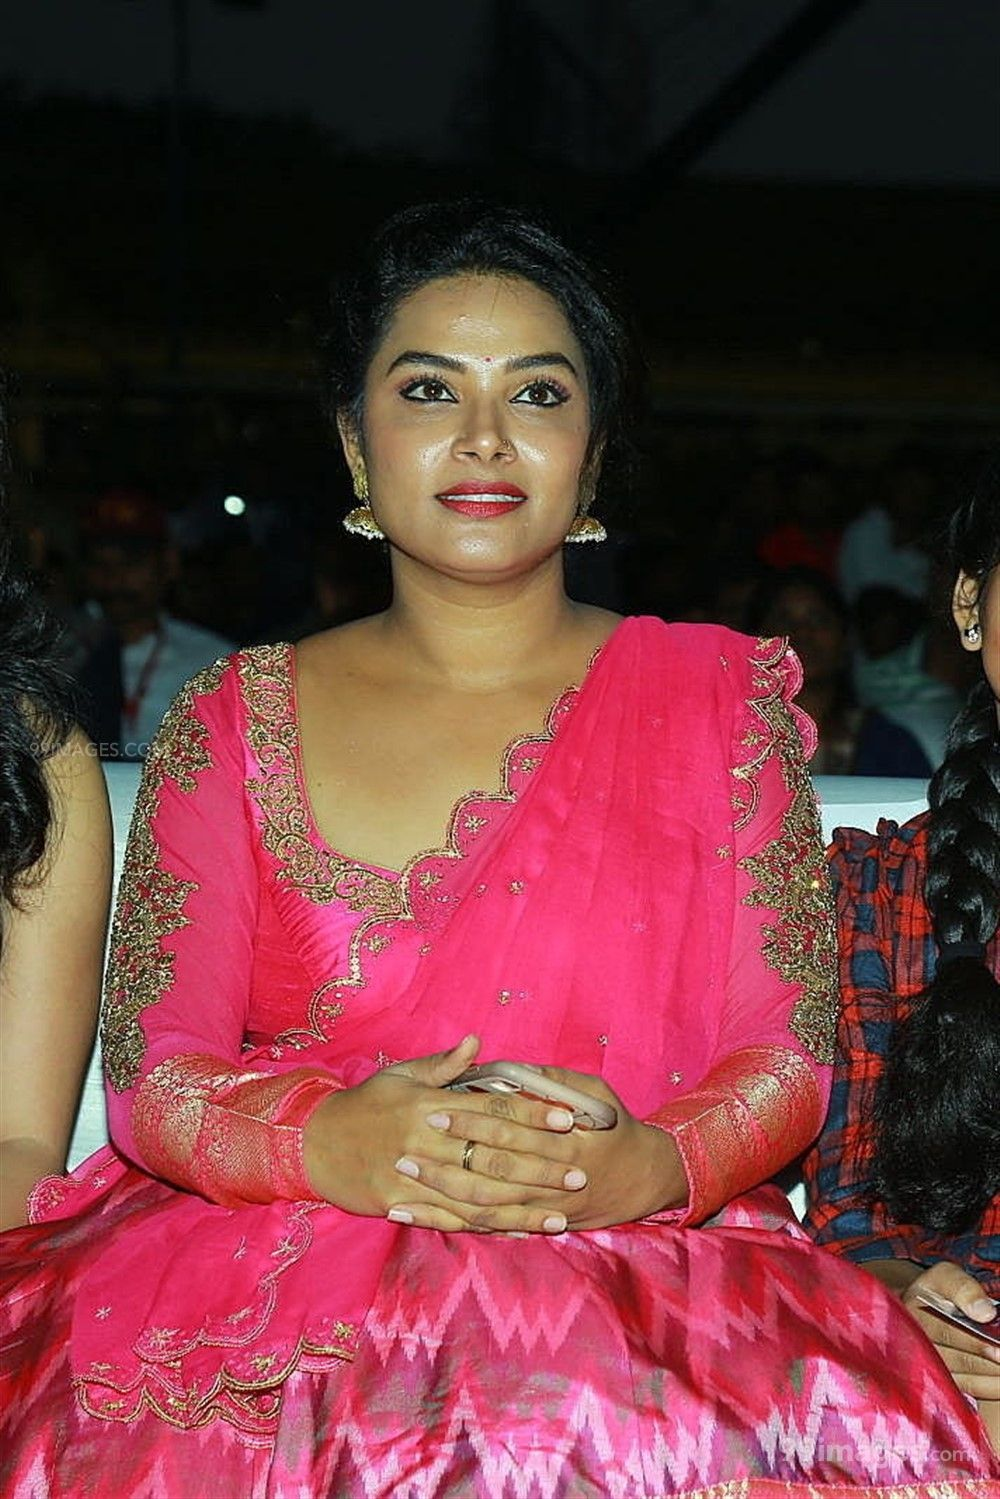 Actress Hari Teja Hot Beautiful HD Photos in Pink Saree at Sarileru Neekevvaru Movie Pre Release Event (219887) - Hari Teja, Sarileru Neekevvaru